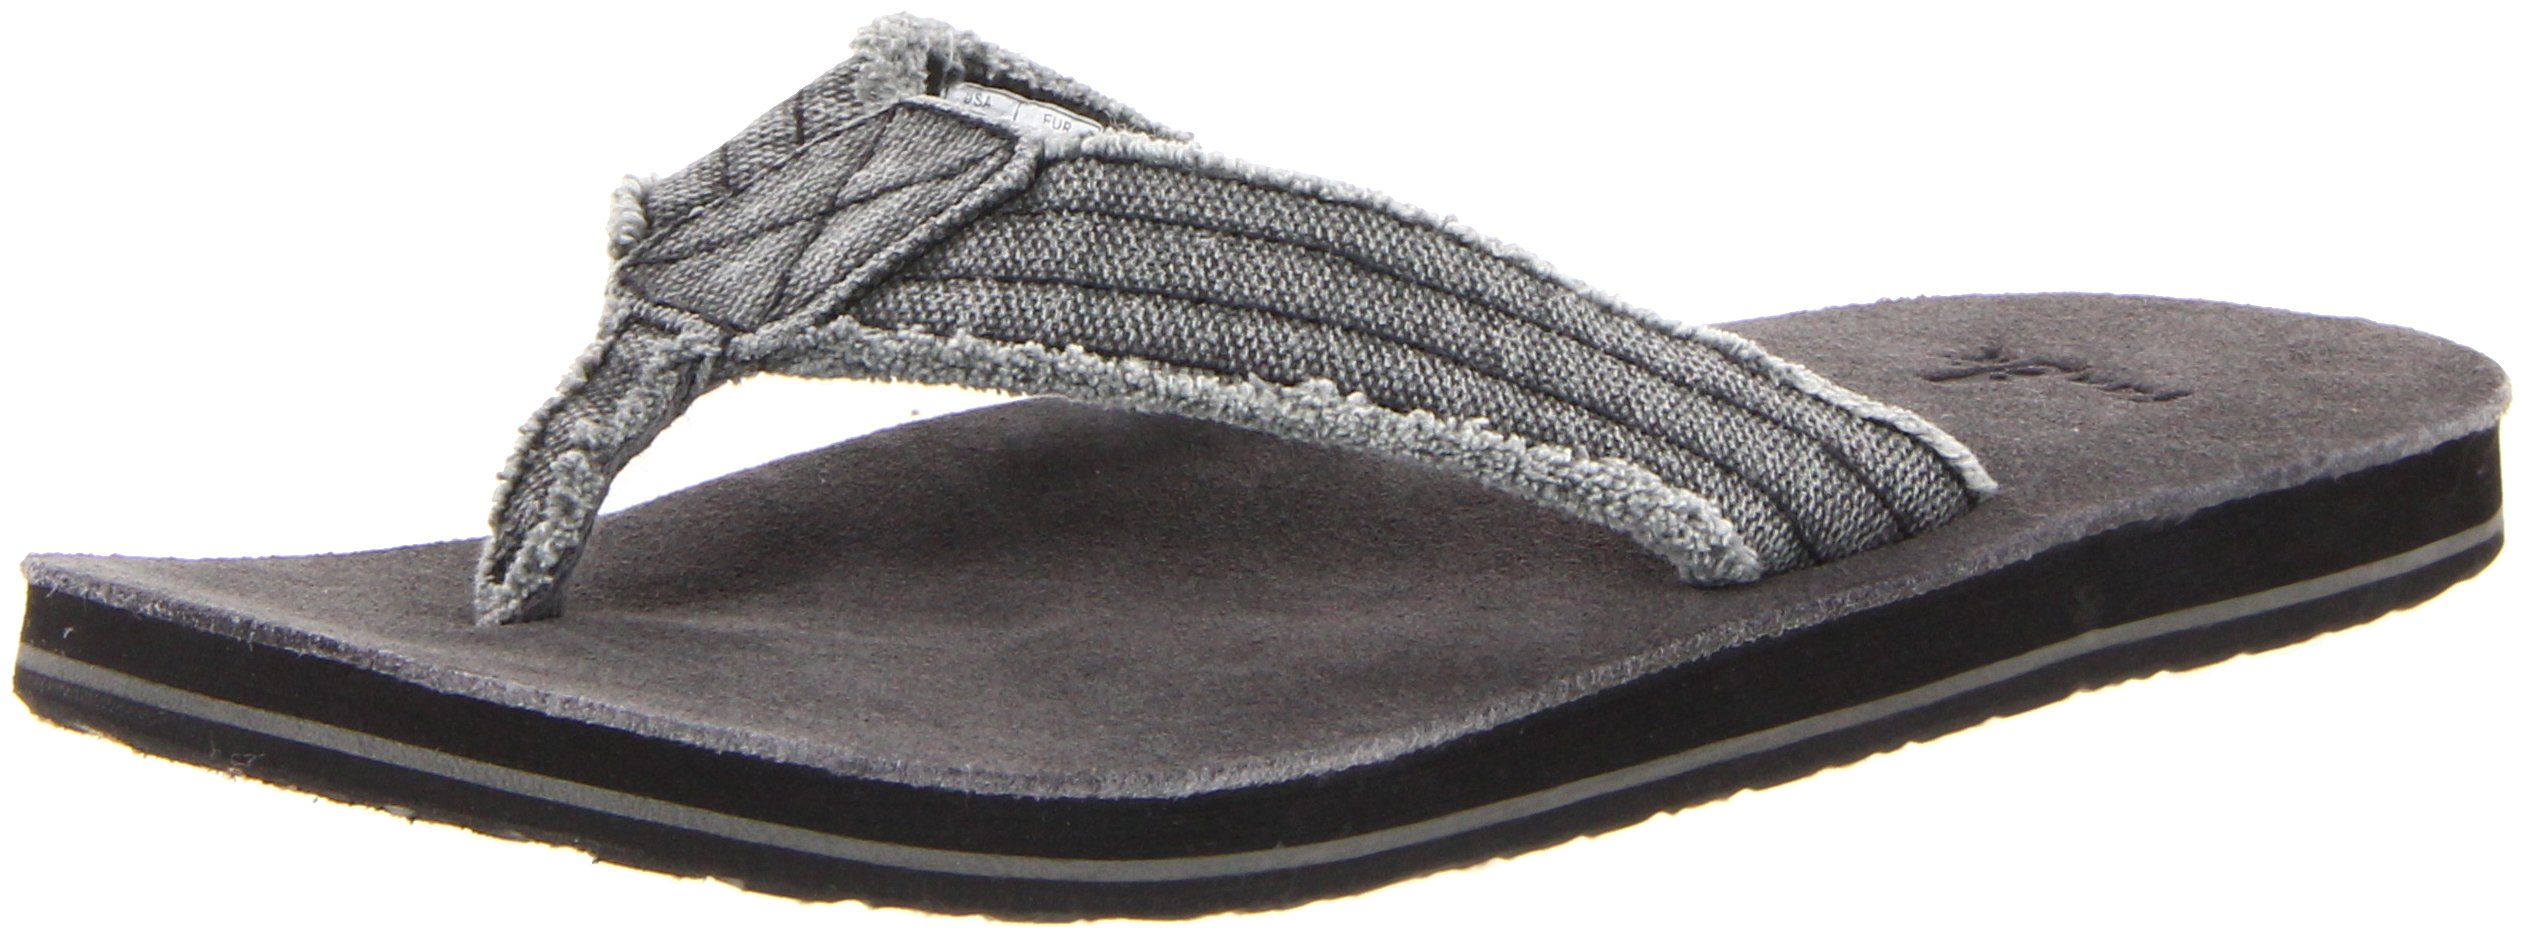 Sanuk Men's Fraid Not Flip FlopCharcoal 11 M US